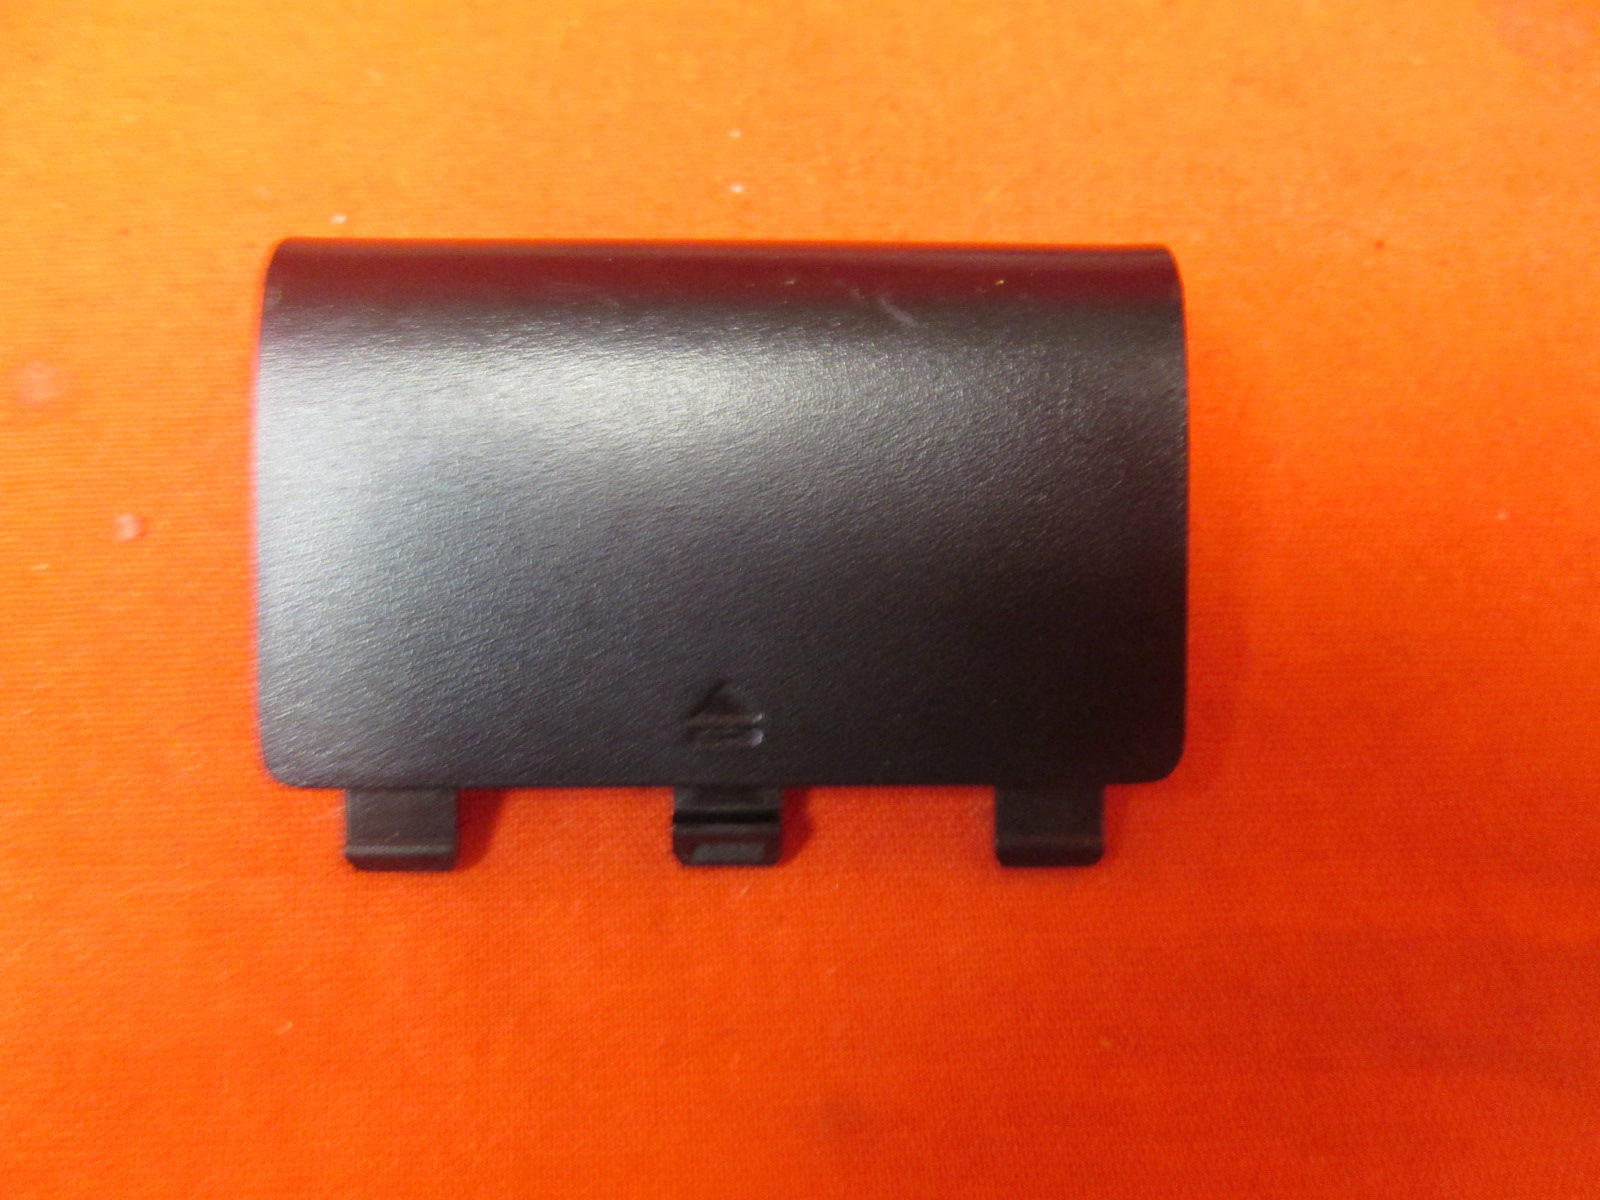 Replacement Microsoft OEM Battery Cover For Xbox One Controller